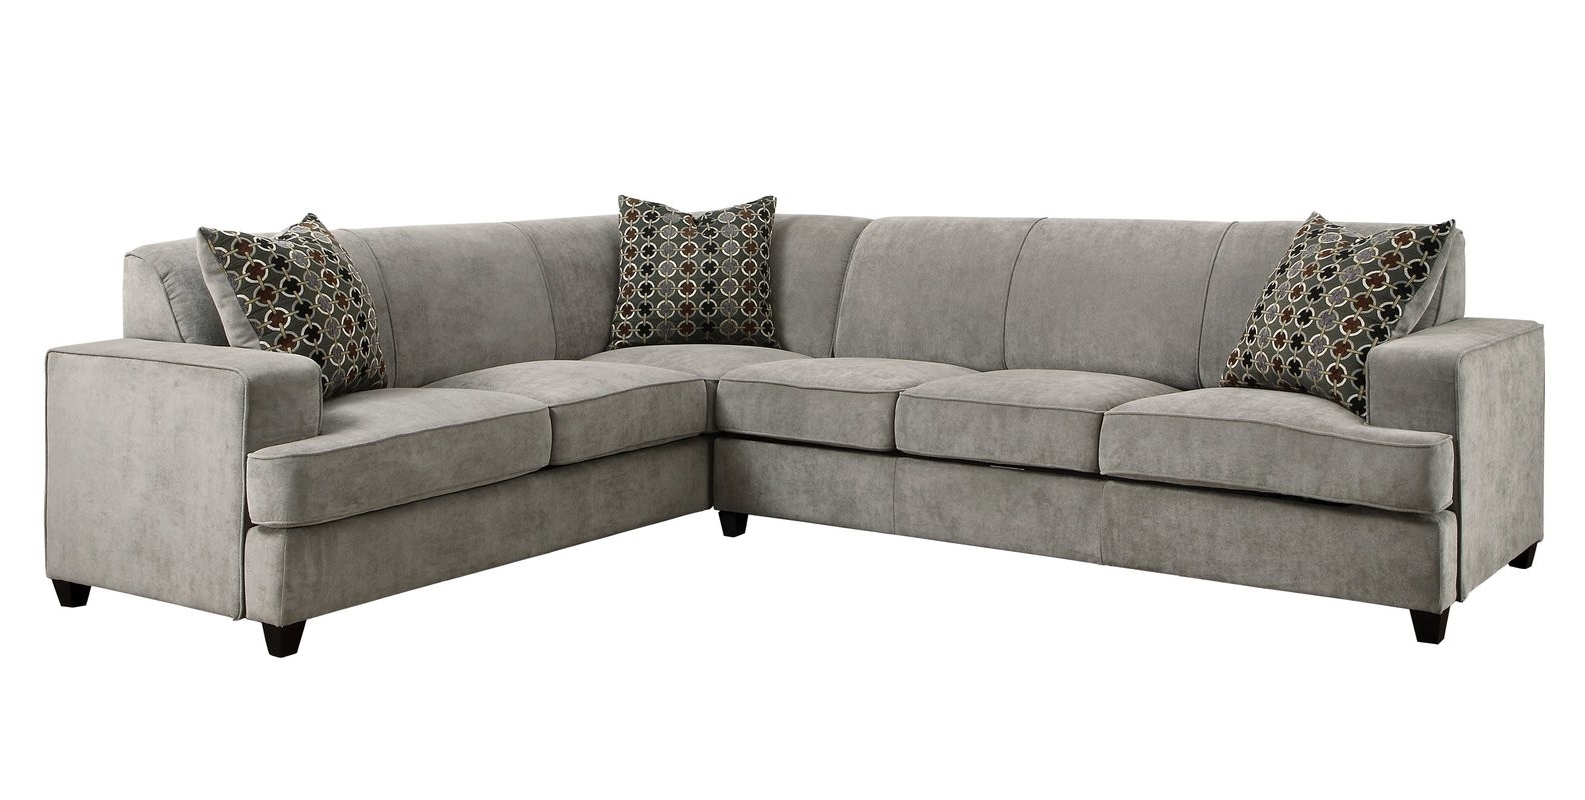 Elegant Simmons Sectional Sofa Joss And Main – Mediasupload Throughout Latest Joss And Main Sectional Sofas (View 20 of 20)